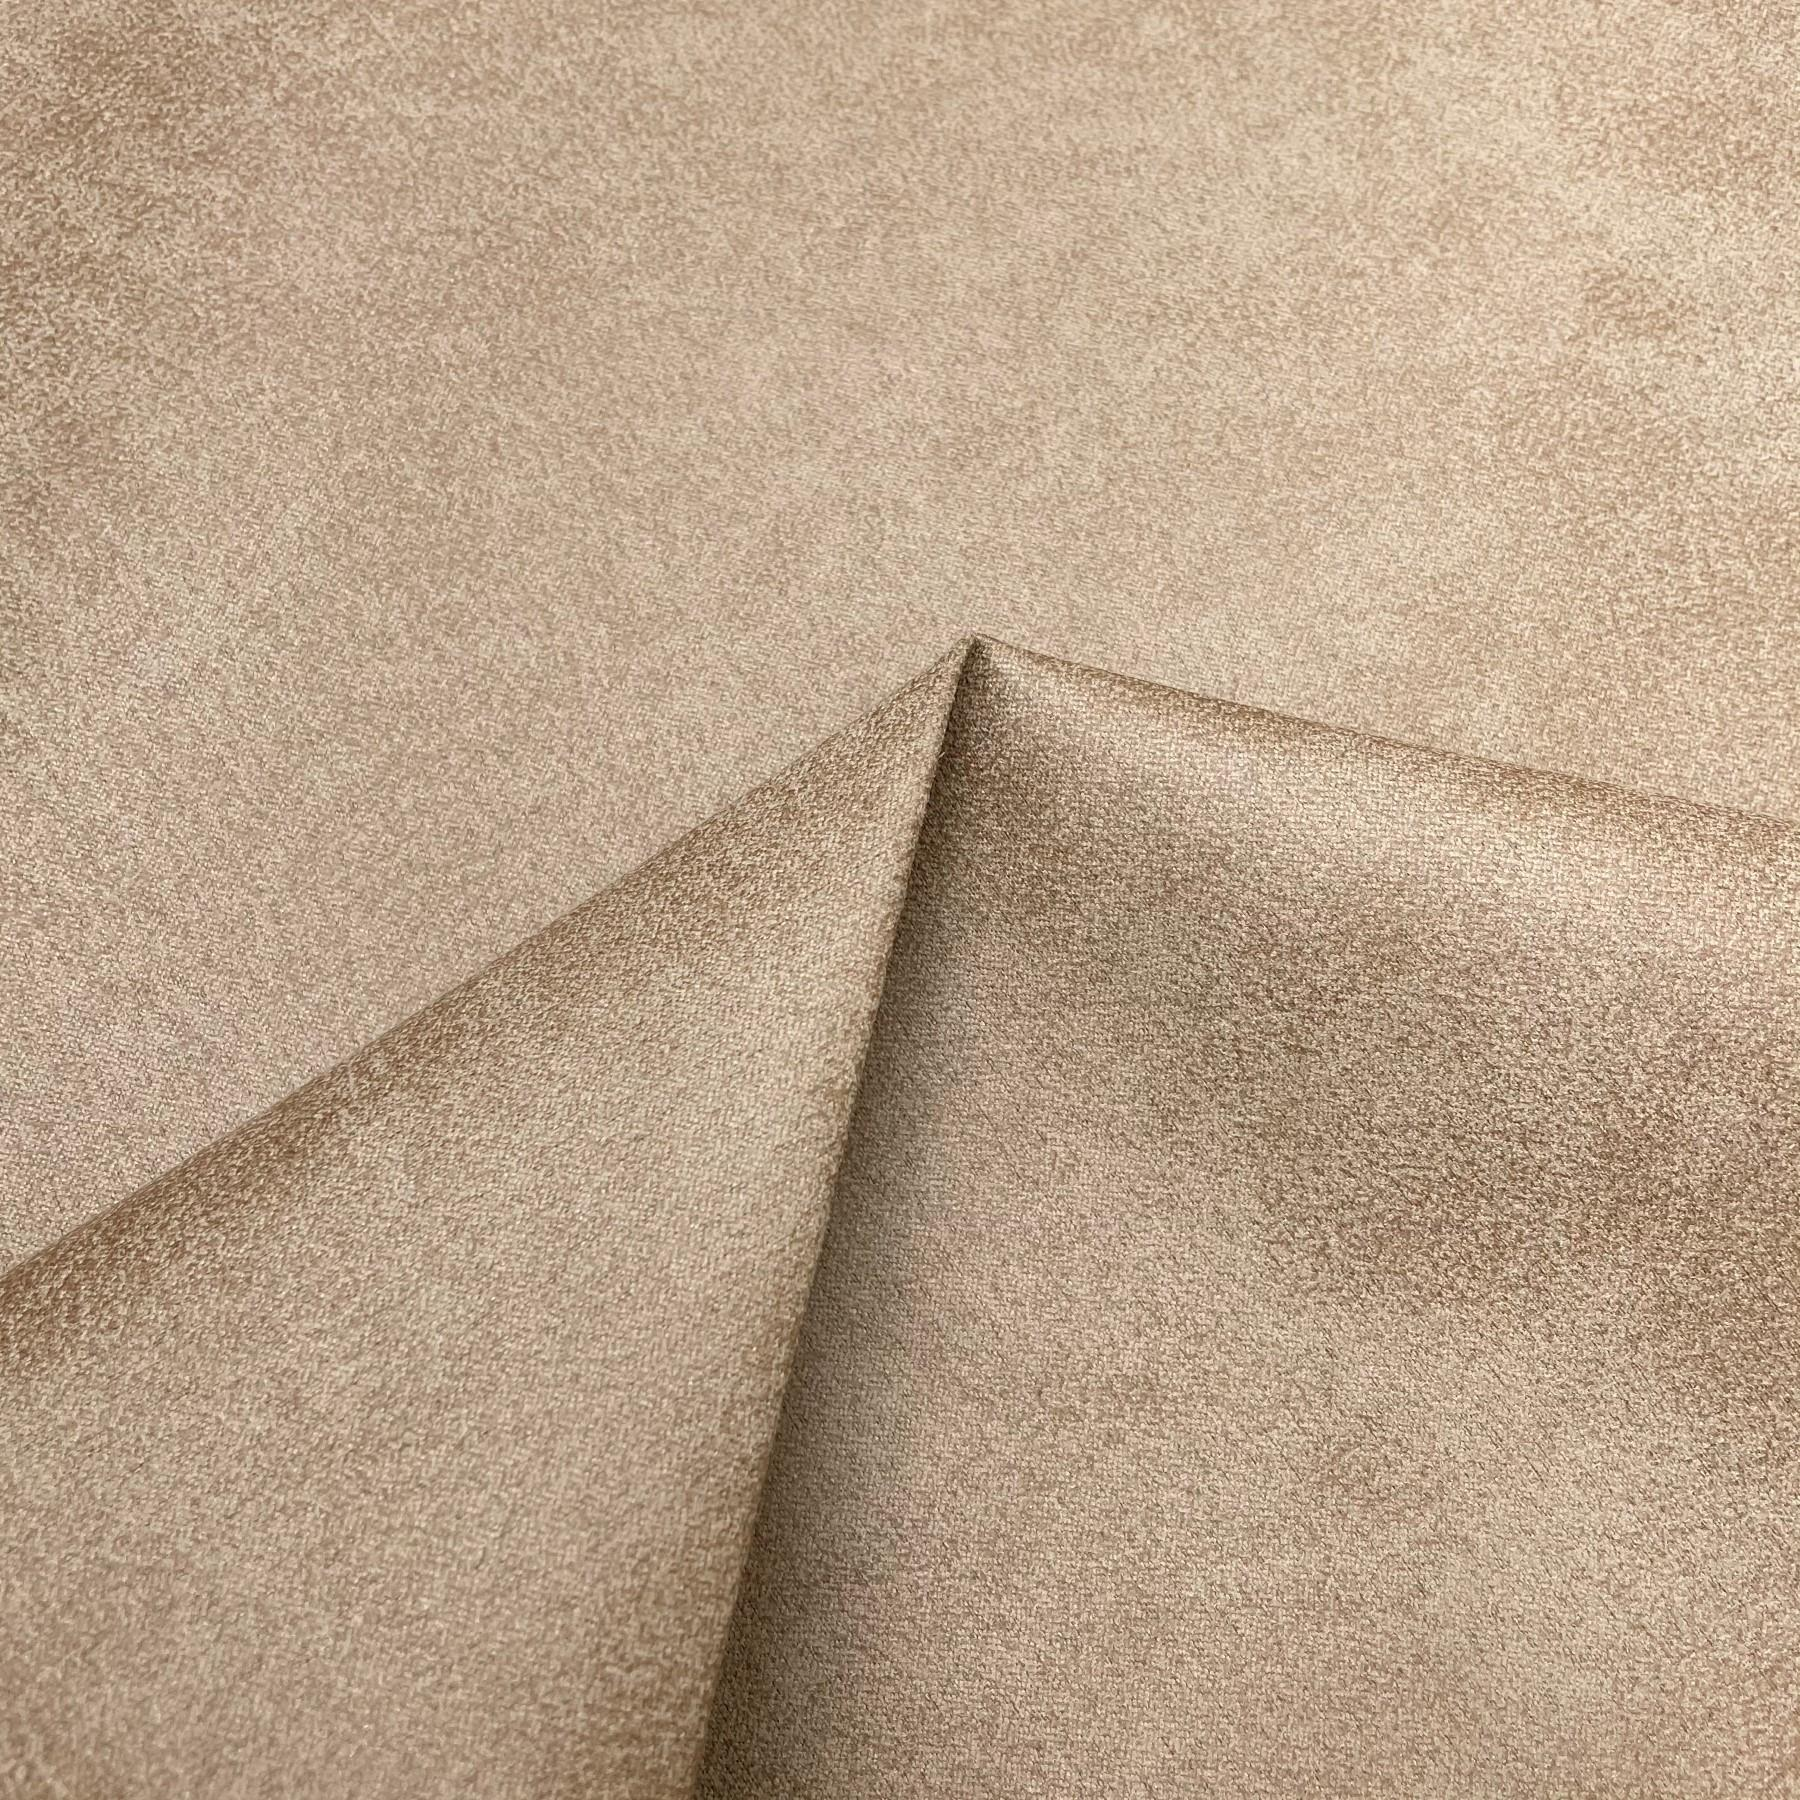 thumbnail 9 - AGED BROWN DISTRESSED ANTIQUED SUEDE FAUX LEATHER LEATHERETTE UPHOLSTERY FABRIC